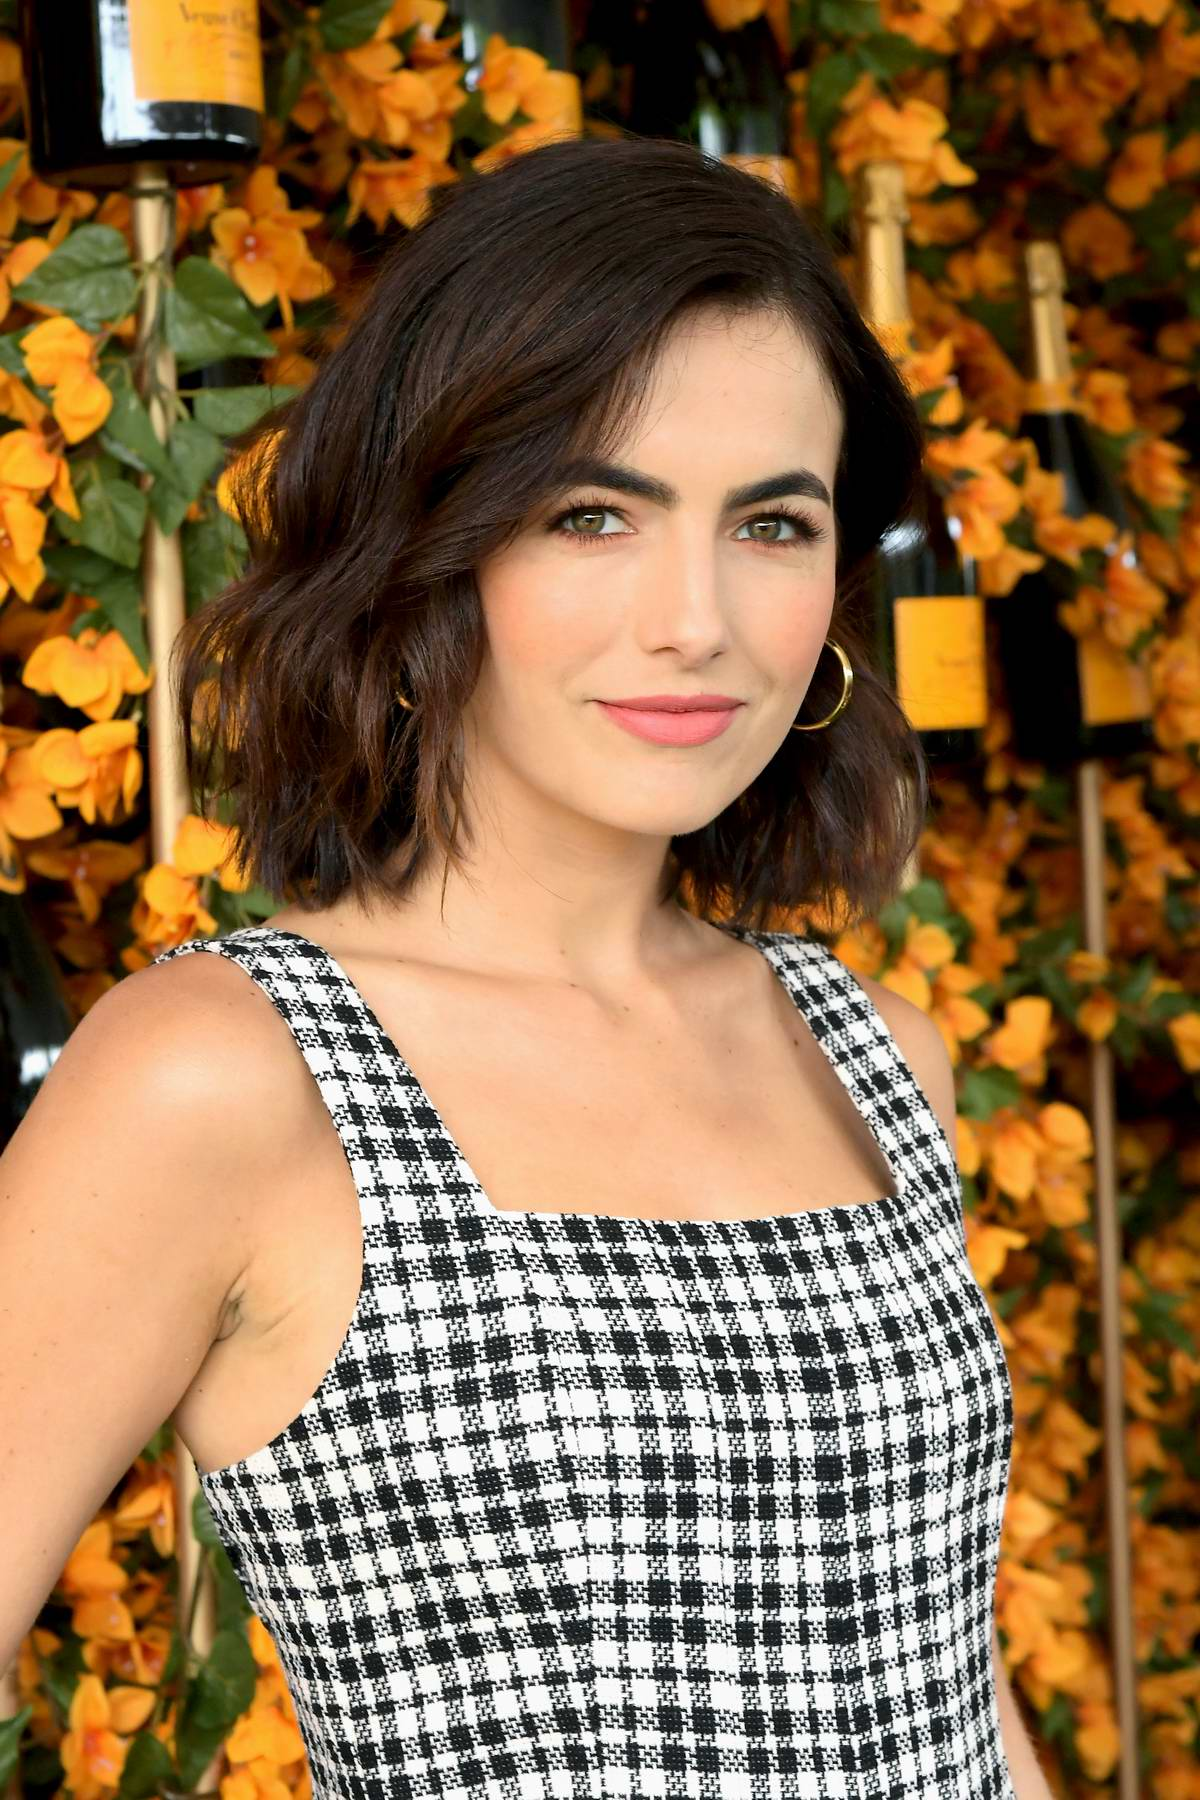 Camilla Belle attends the Ninth Annual Veuve Clicquot Polo Classic in Los Angeles